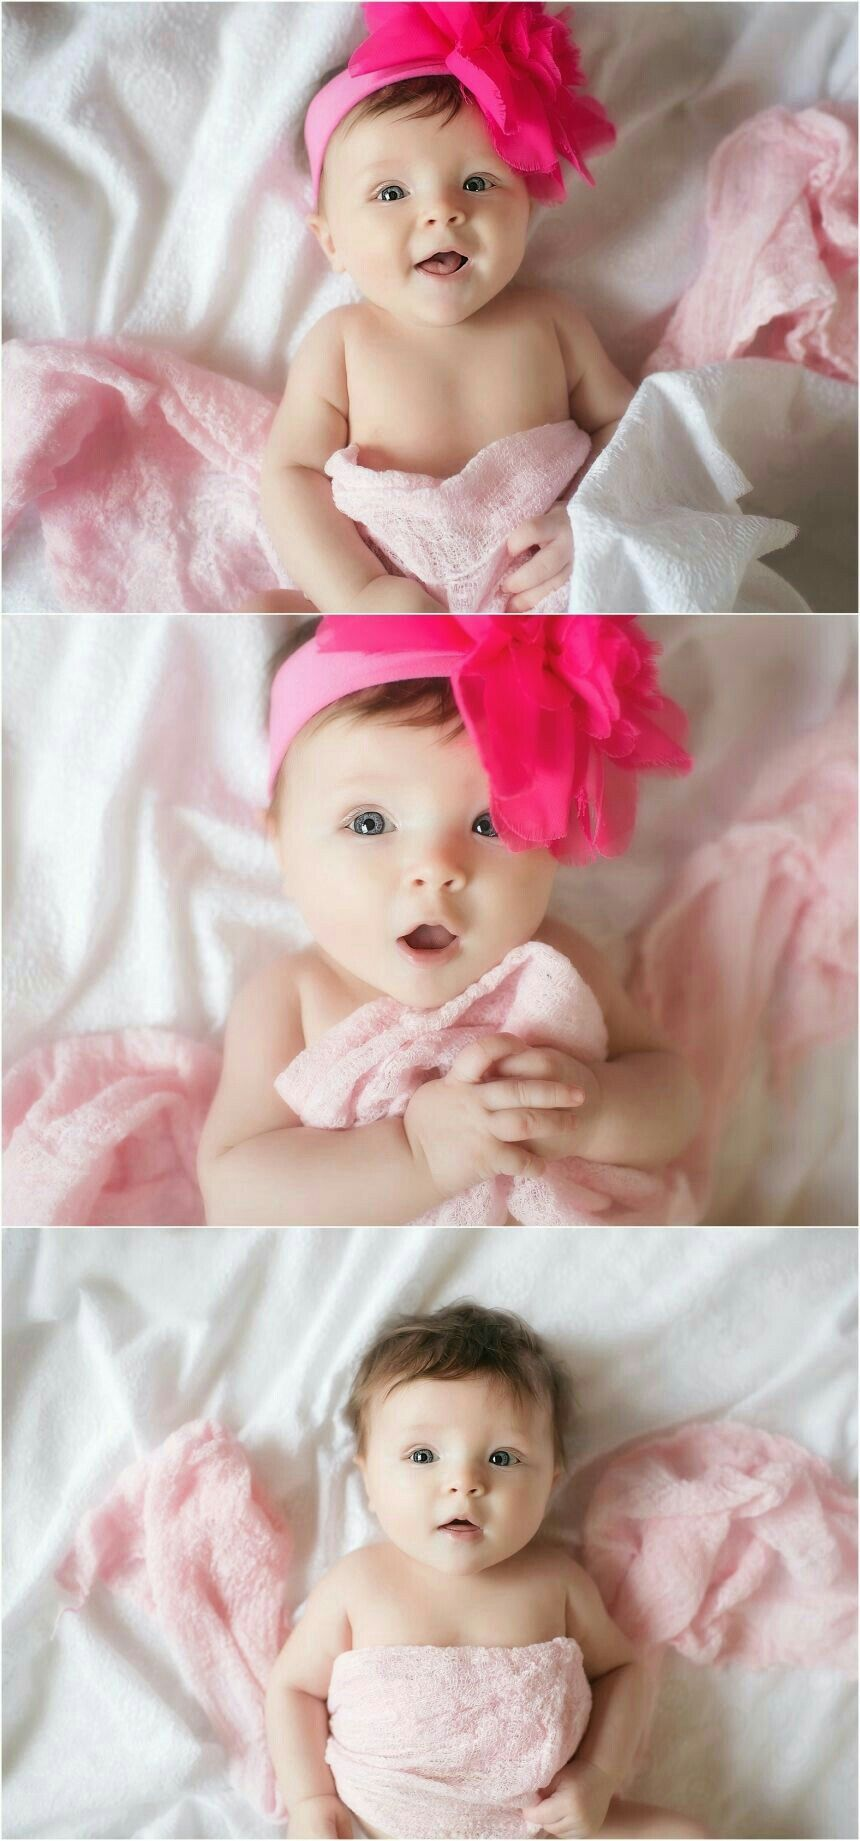 Photoshoot Ideas For Baby Girl At Home : photoshoot, ideas, Photo, Shoot, Ideas, Photography,, Photoshoot, Girl,, Monthly, Photos